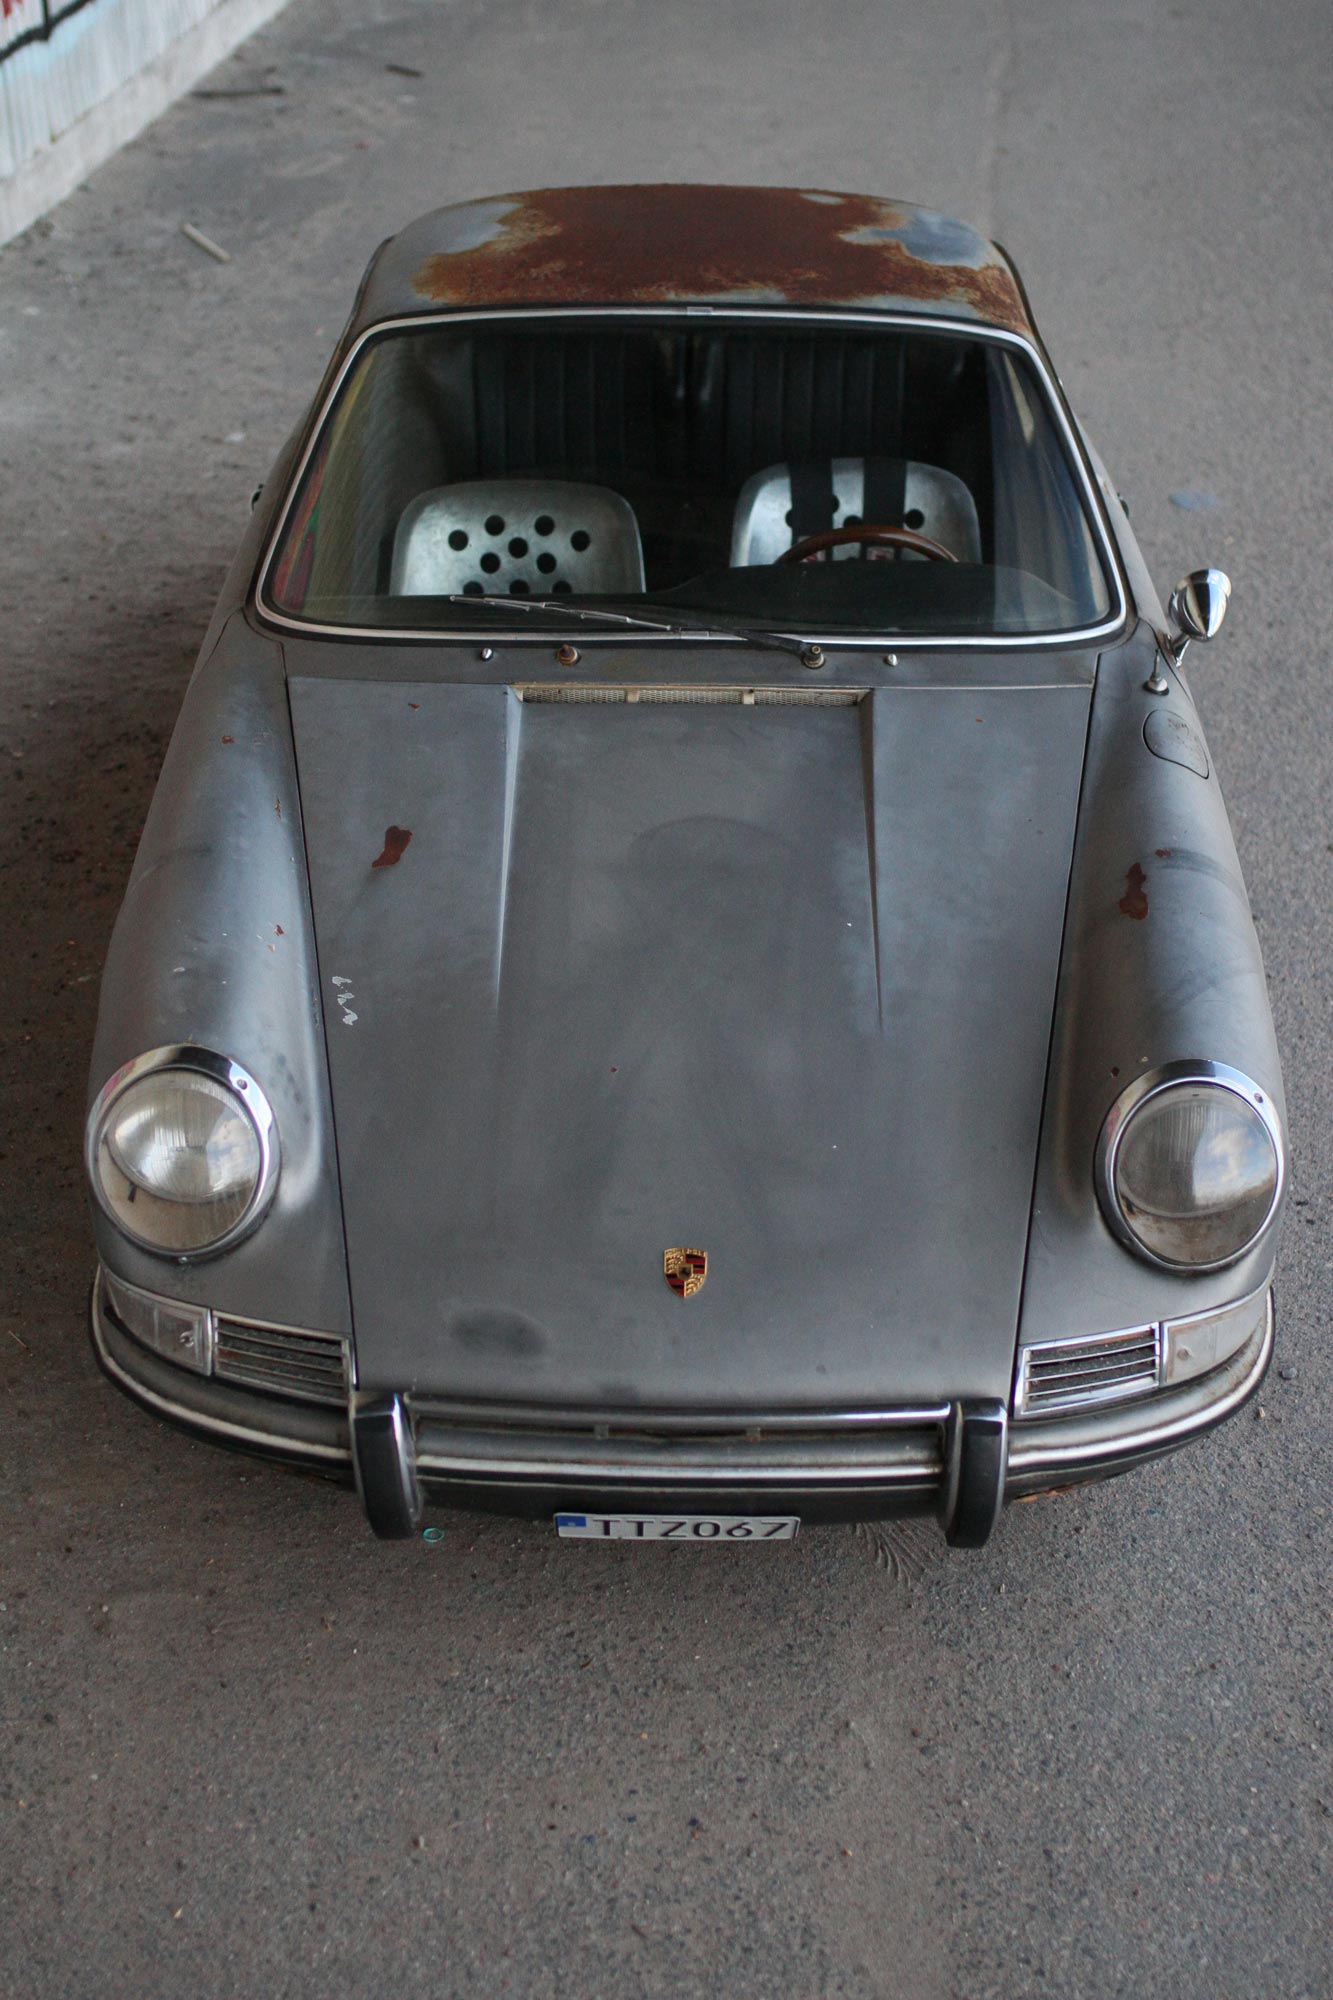 The patina Porsche 912 front, grey with rusty spots and a rusty roof